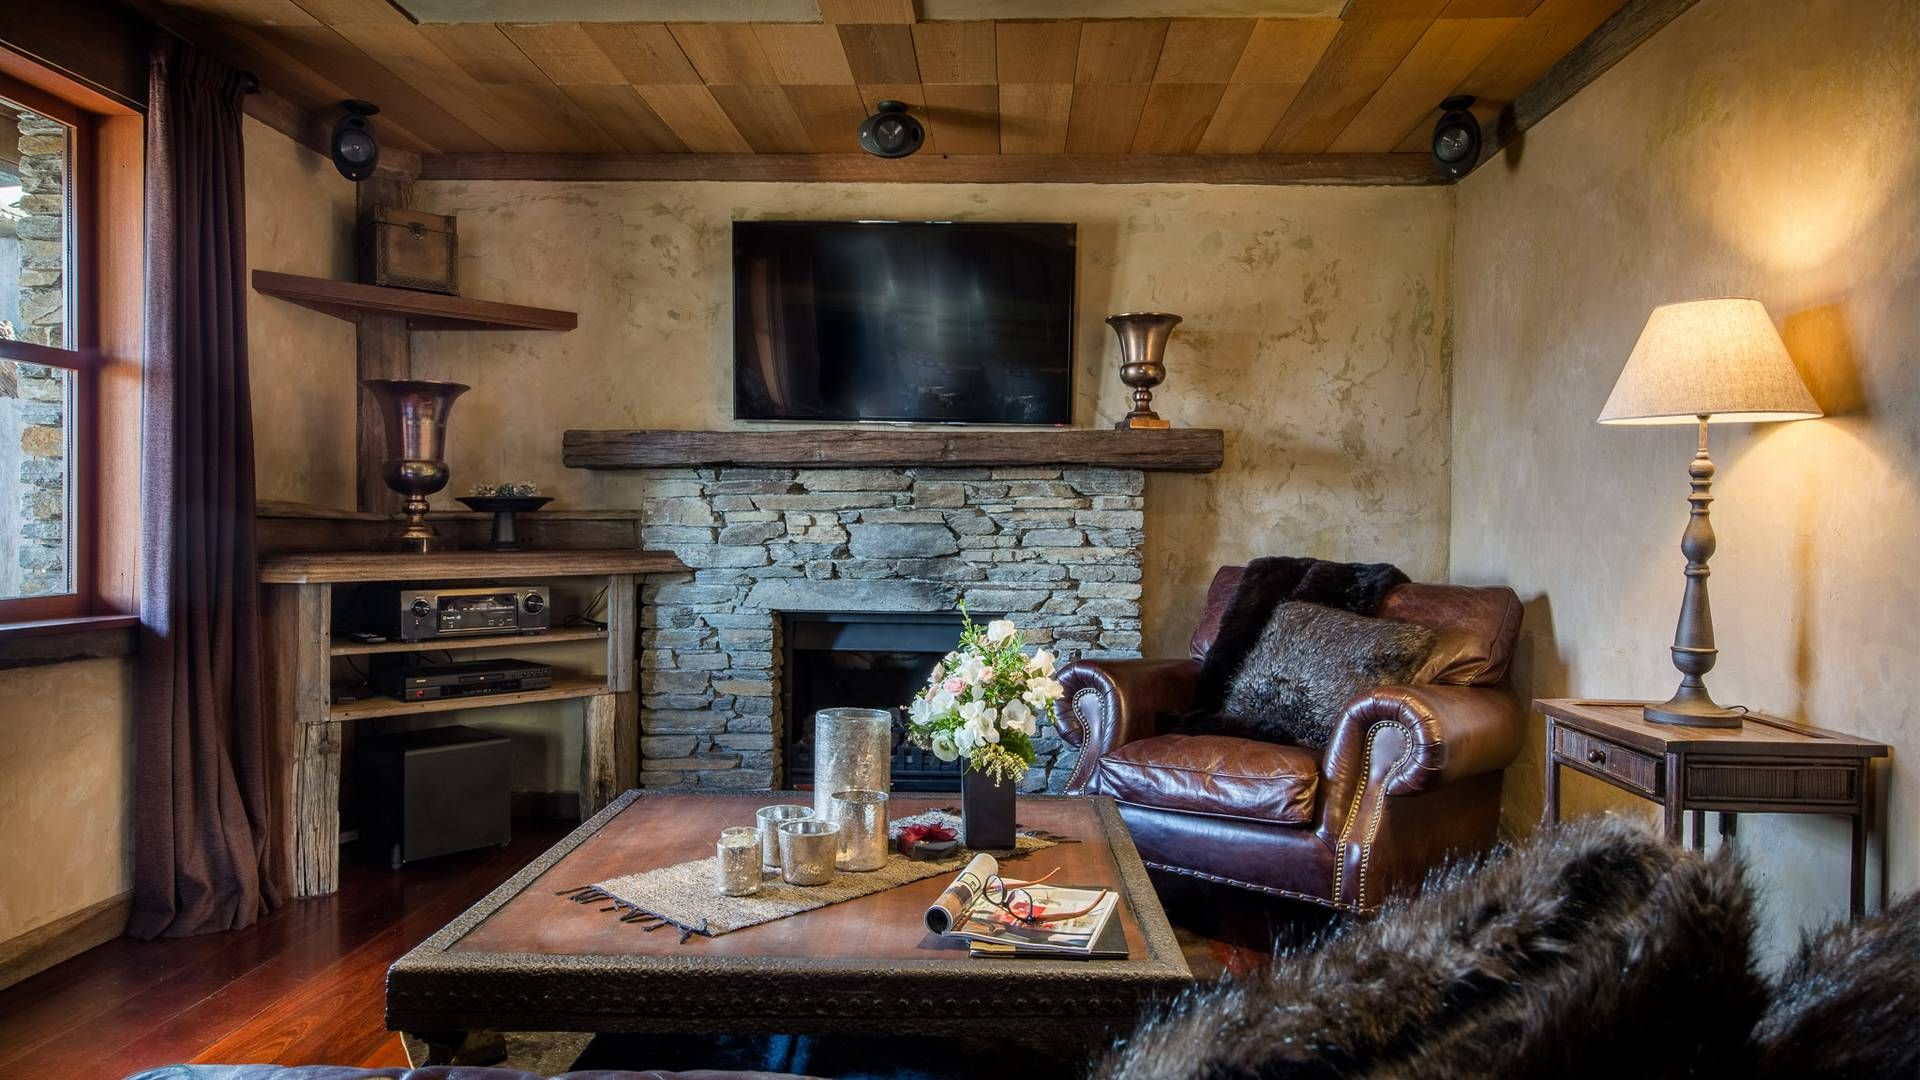 Cosy Cottage fireplace & living area